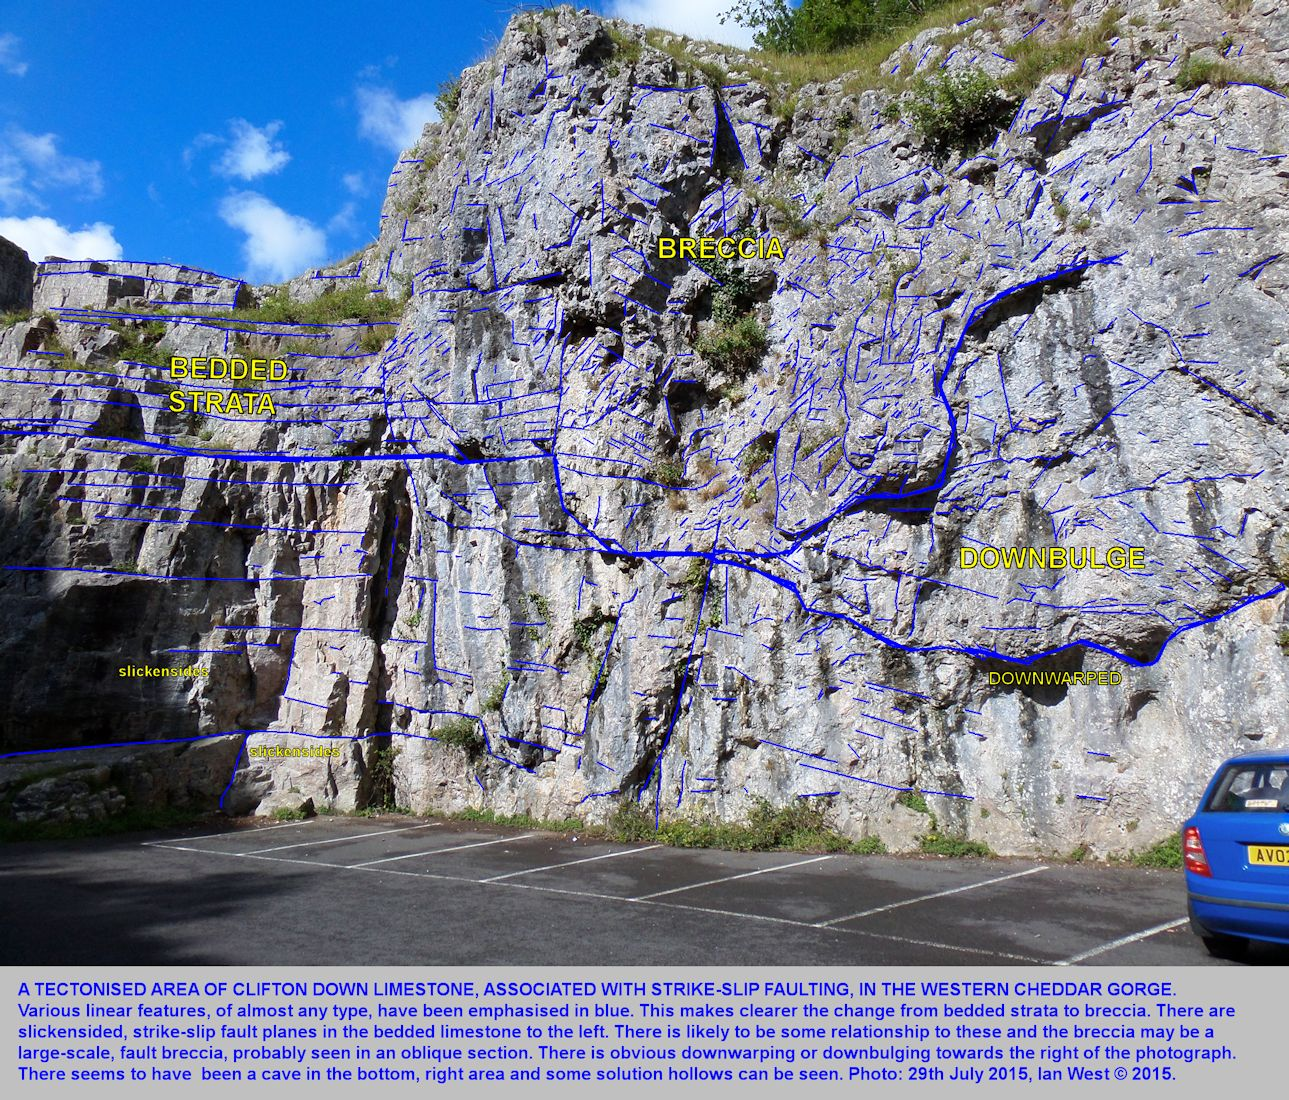 A tectonised zone of Clifton Down Limestone, adjacent to strike-slip faults, lower part of Cheddar Gorge, Mendip Hills, Somerset, 29th July 2015